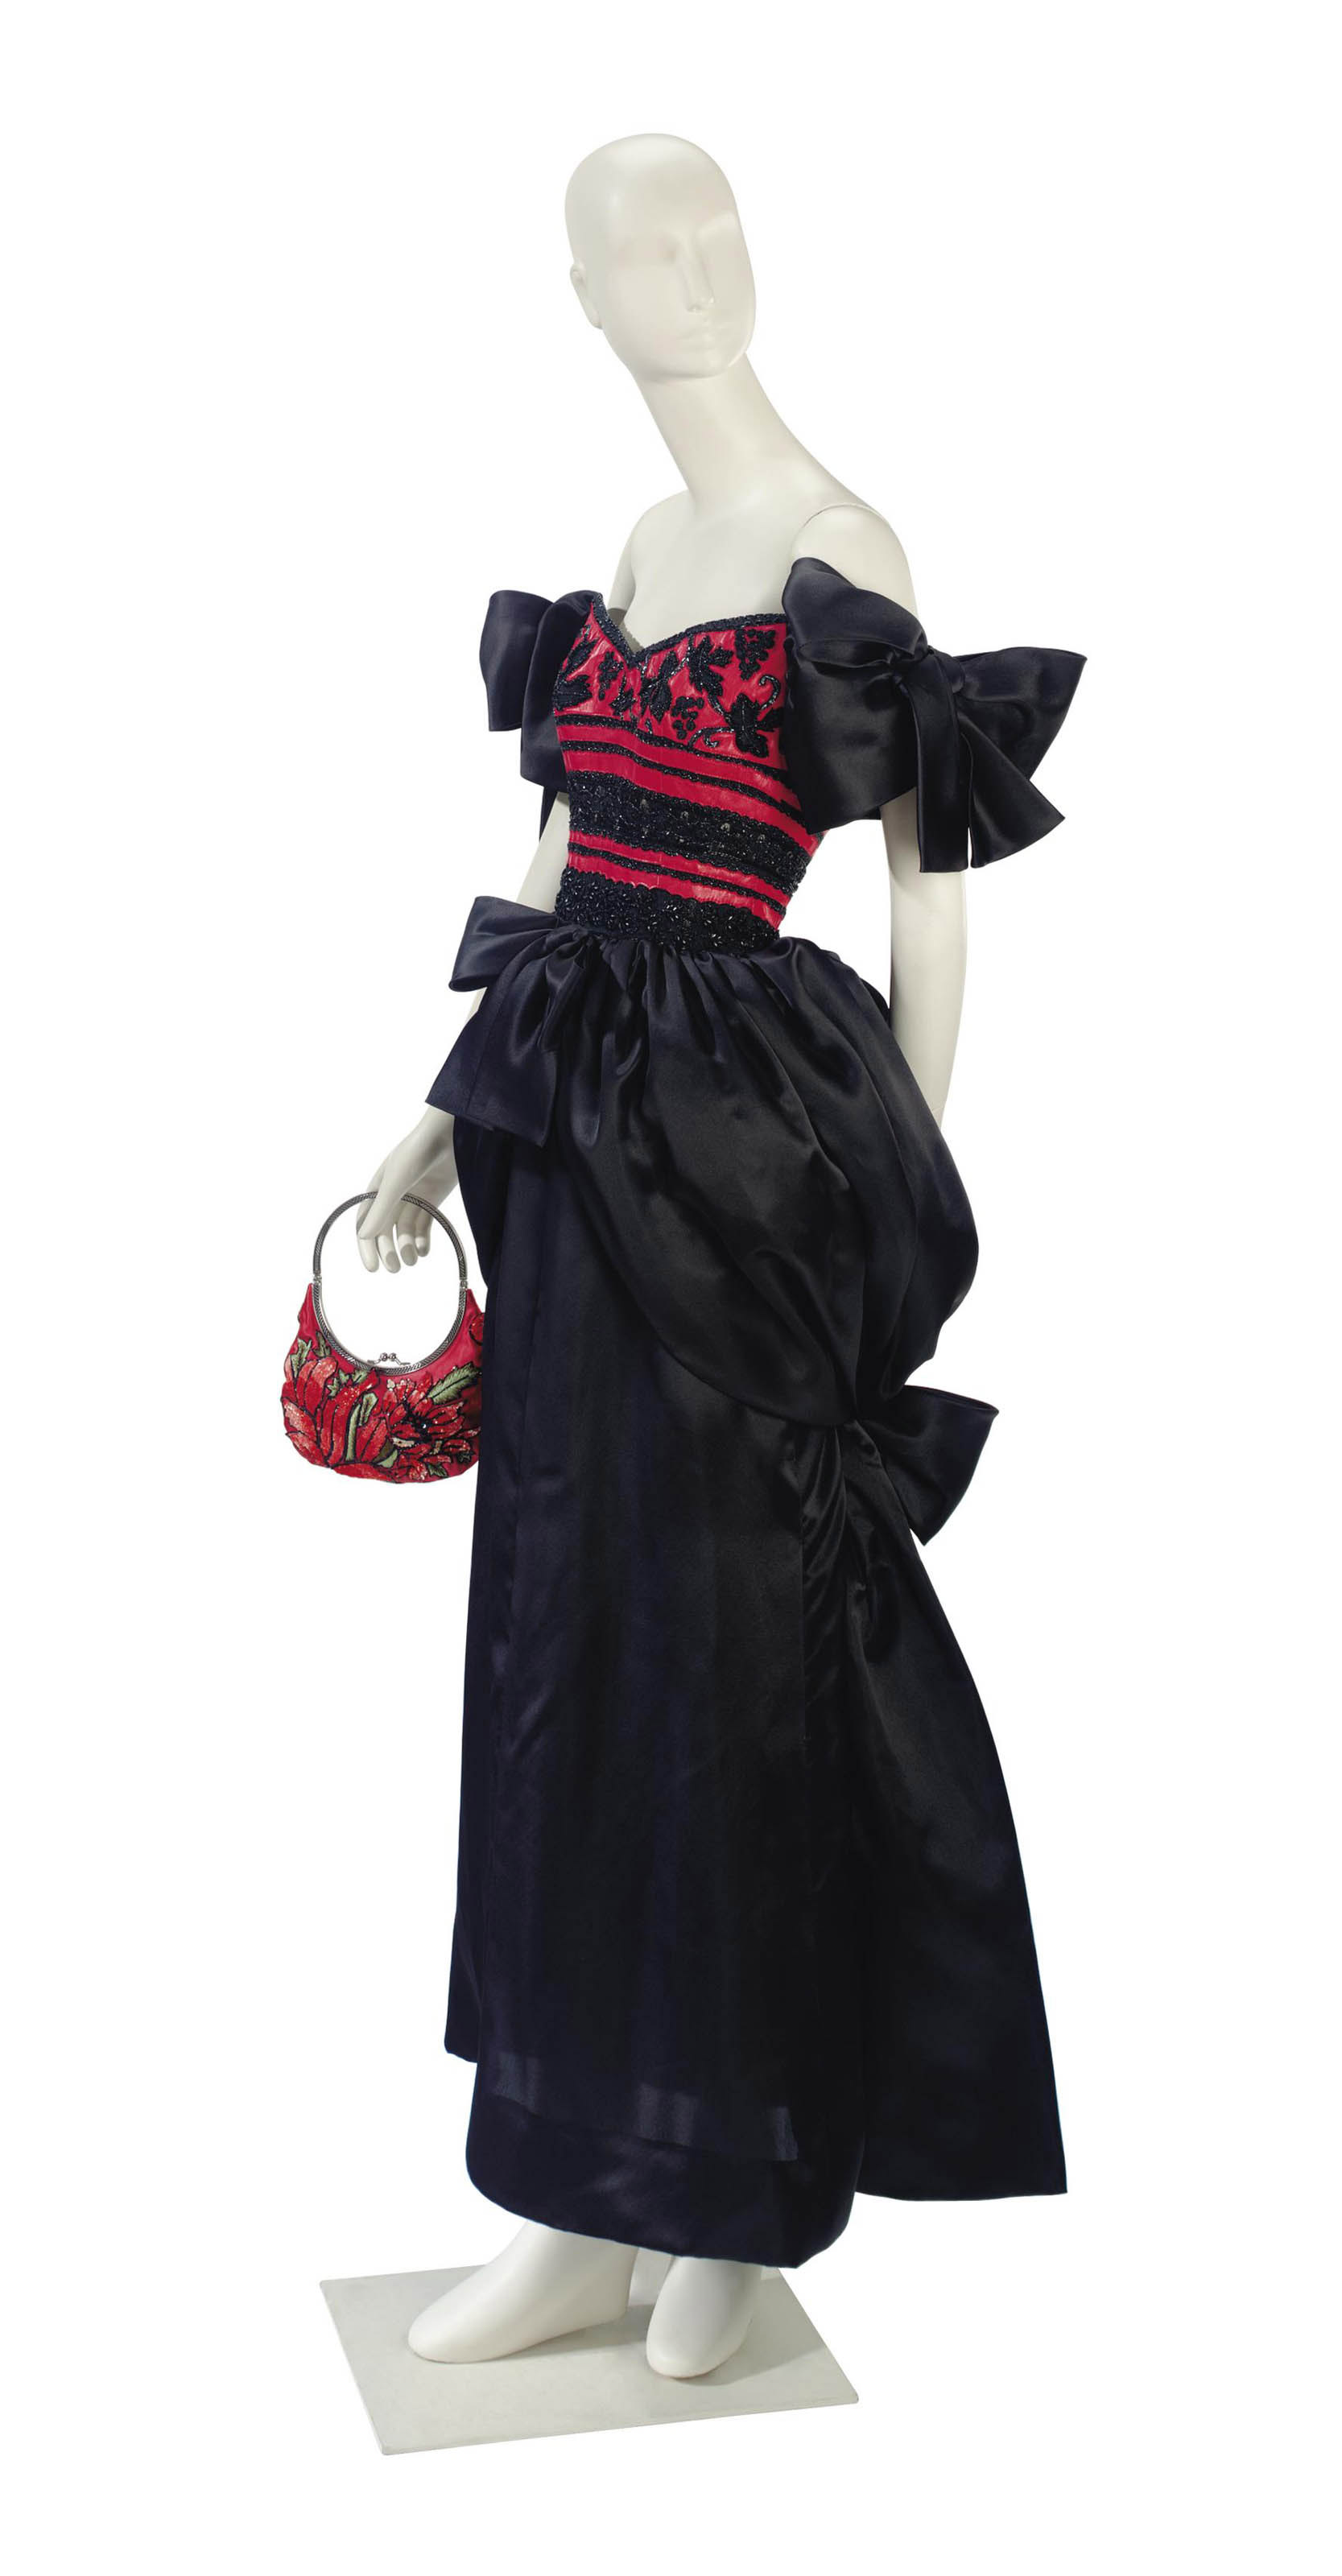 A GIVENCHY EVENING GOWN AND VALENTINO SATIN EVENING BAG